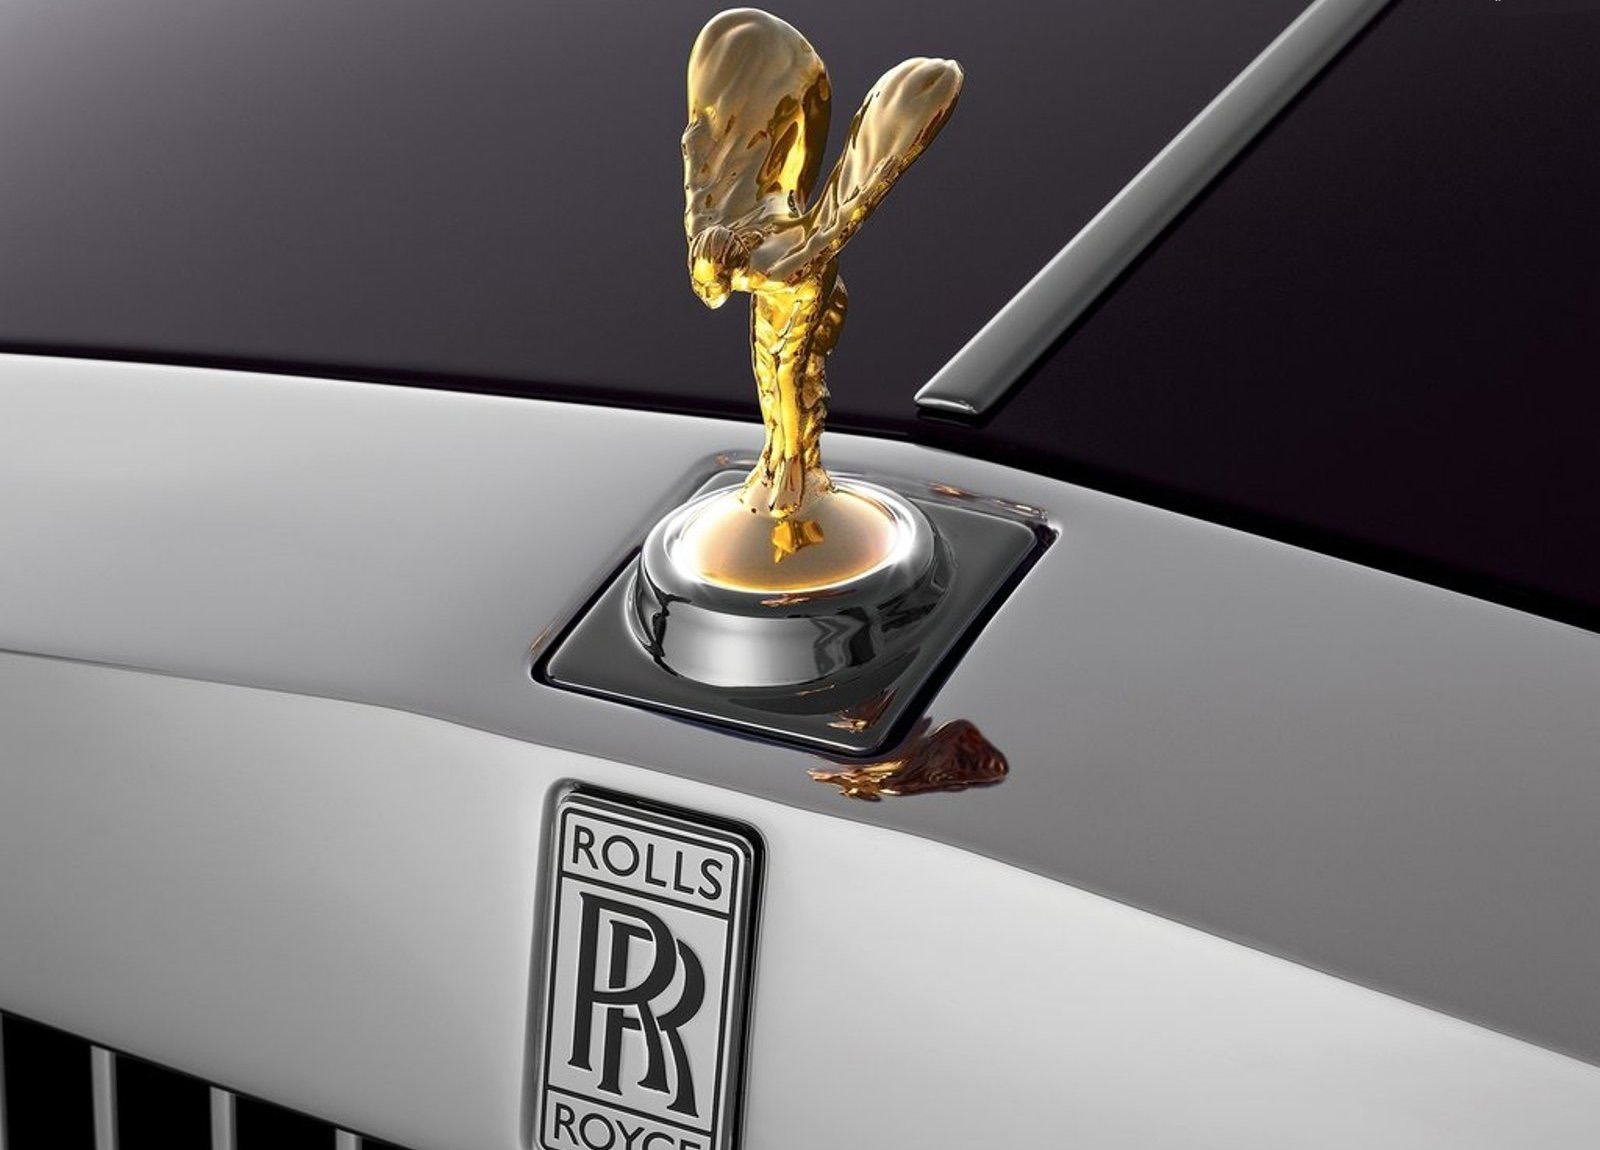 Rolls Royce Symbol Wallpaper